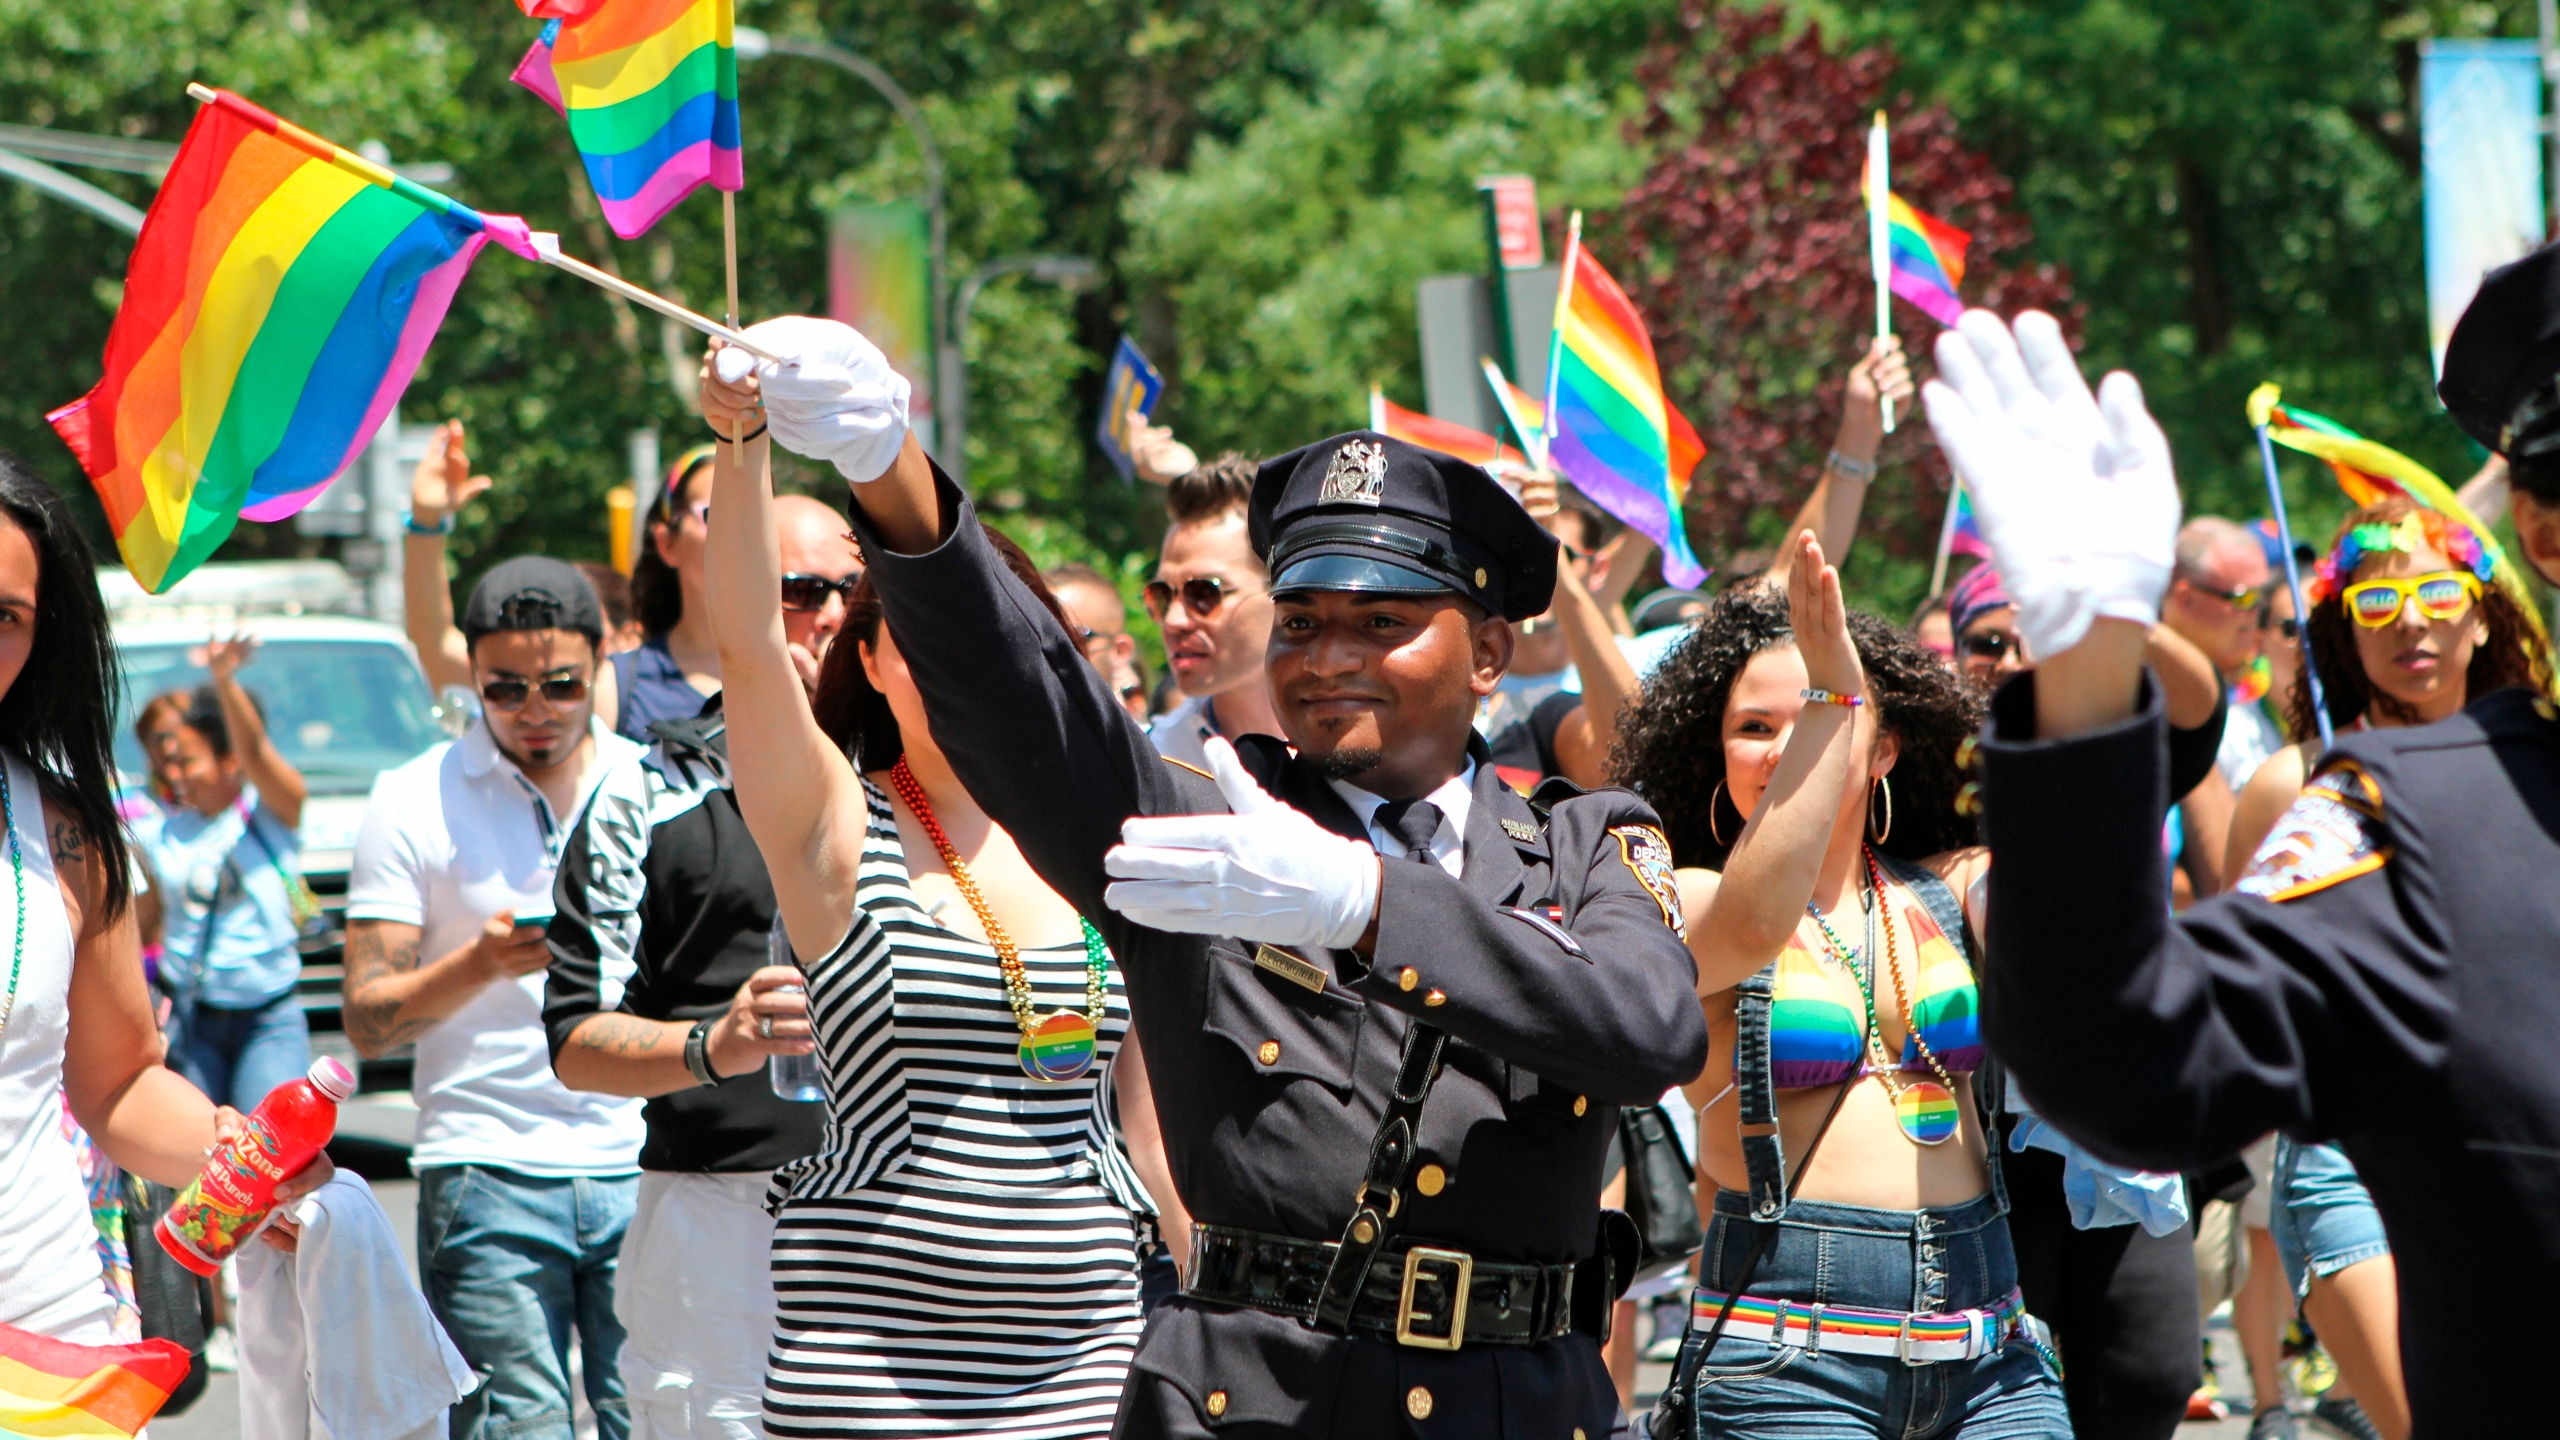 In this Sunday, June 29, 2014 file photo, NYPD police officers march along Fifth Avenue during the gay pride parade in New York. Organizers of New York City's Pride events said Saturday, May 15, 2021 they are banning police and other law enforcement from marching in their huge annual parade until at least 2025 and will also seek to keep on-duty officers a block away from the celebration of LGBTQ people and history. (AP Photo/Julia Weeks, File)